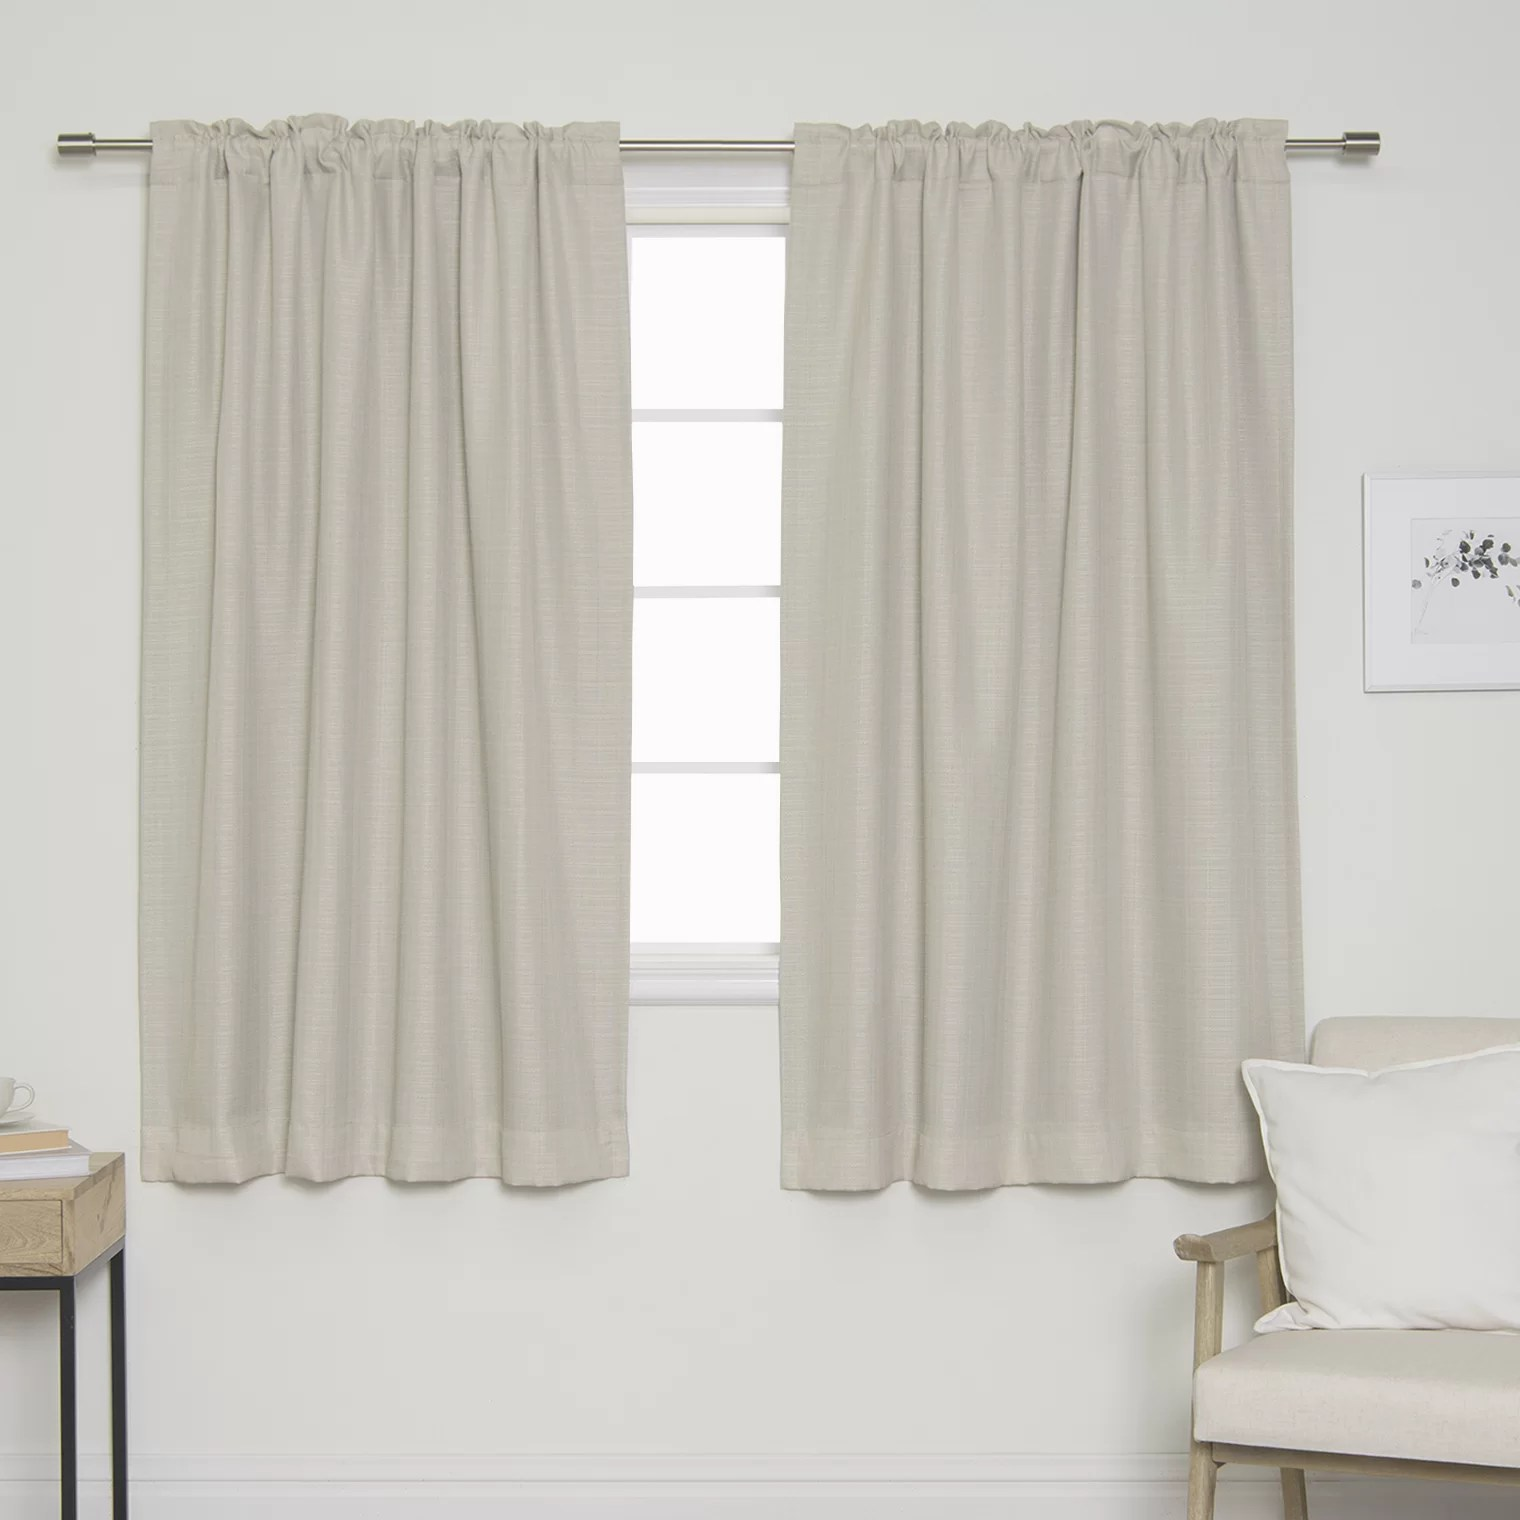 Tab Top Curtain Vivan Woven Faux Linen Solid Blackout Back Tab Top Curtain Panels